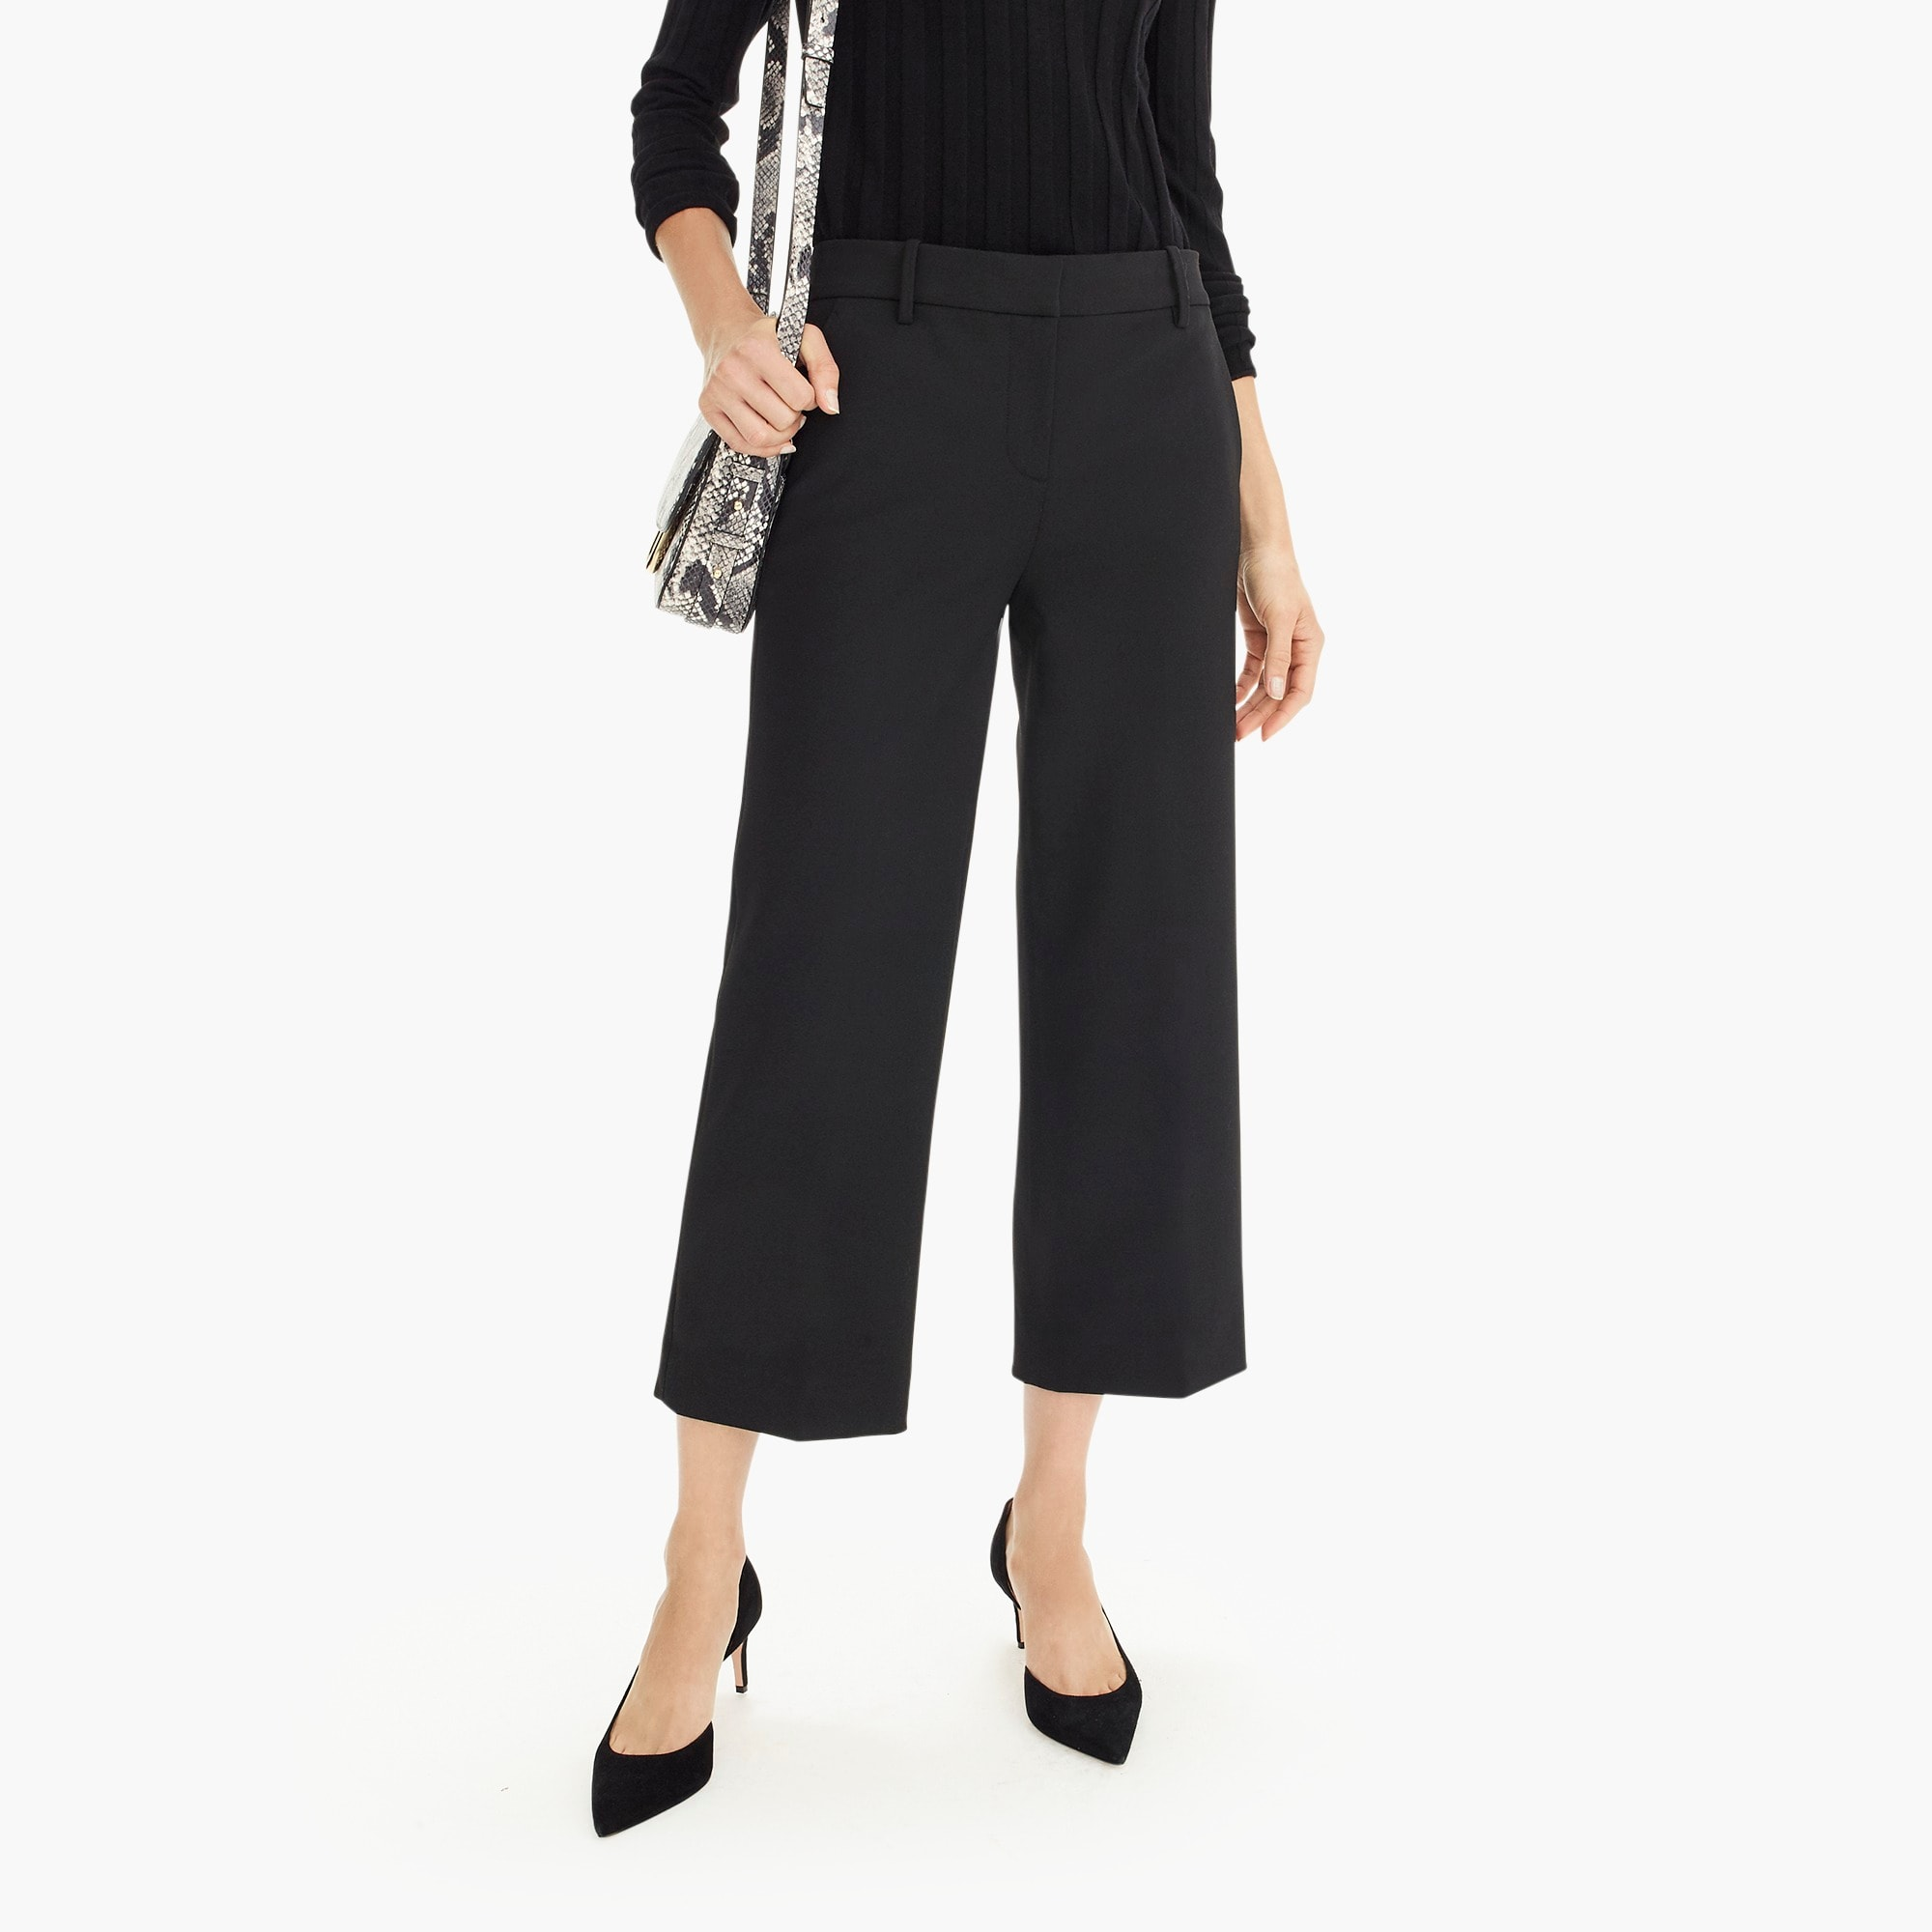 Image 1 for Petite High-rise Peyton wide-leg pant in four-season stretch